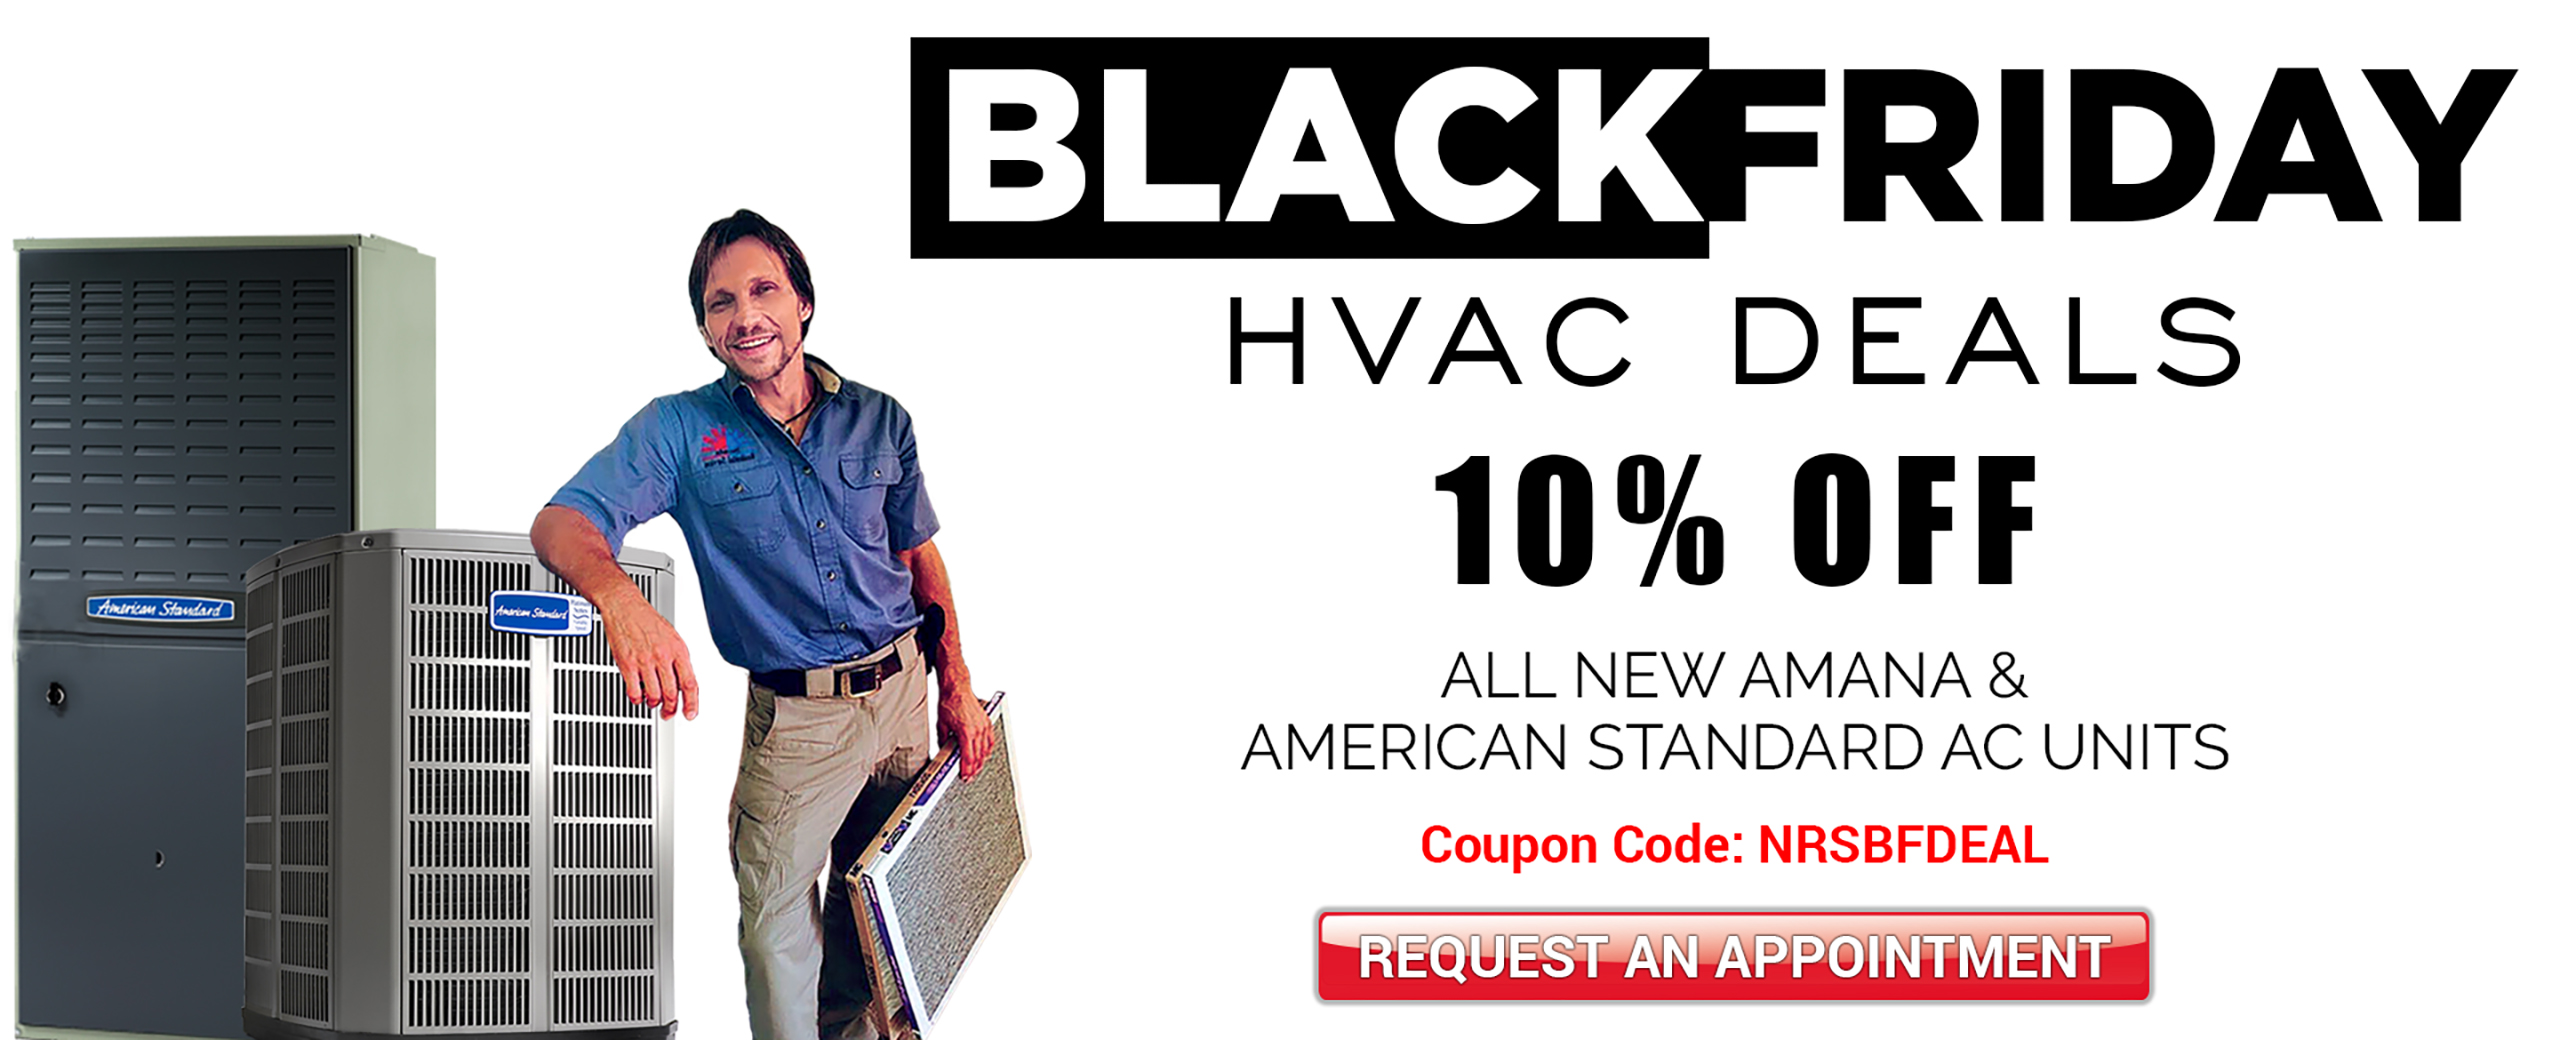 Black Friday HVAC deals in las-vegas - 10% off on New AC Installation